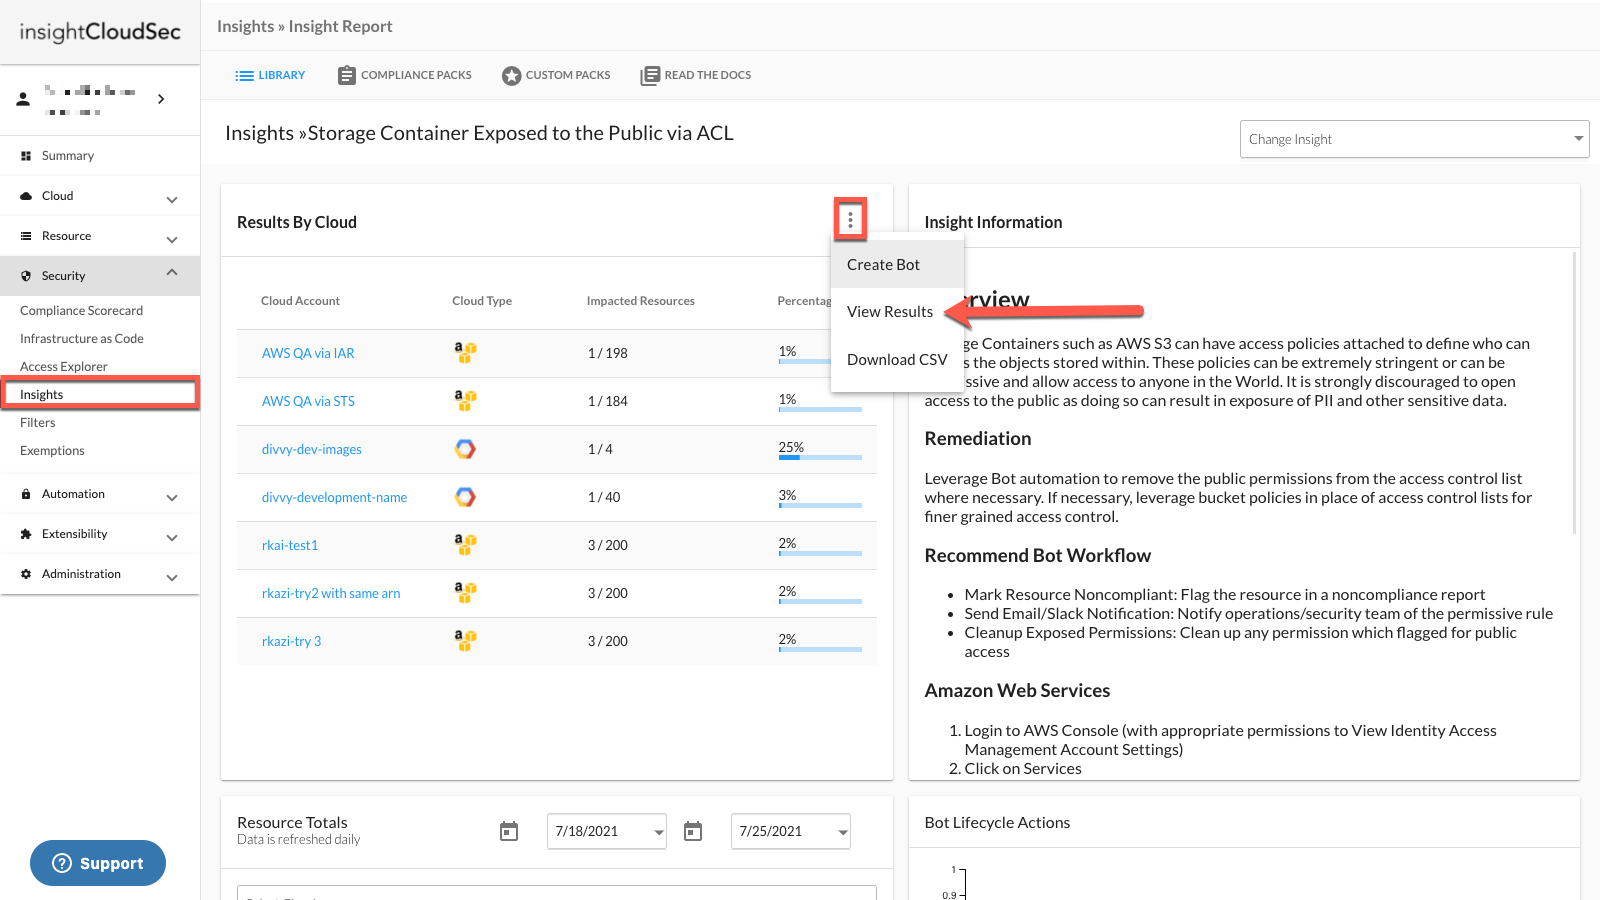 Open Exemptions through the Insight Name - View Results Menu